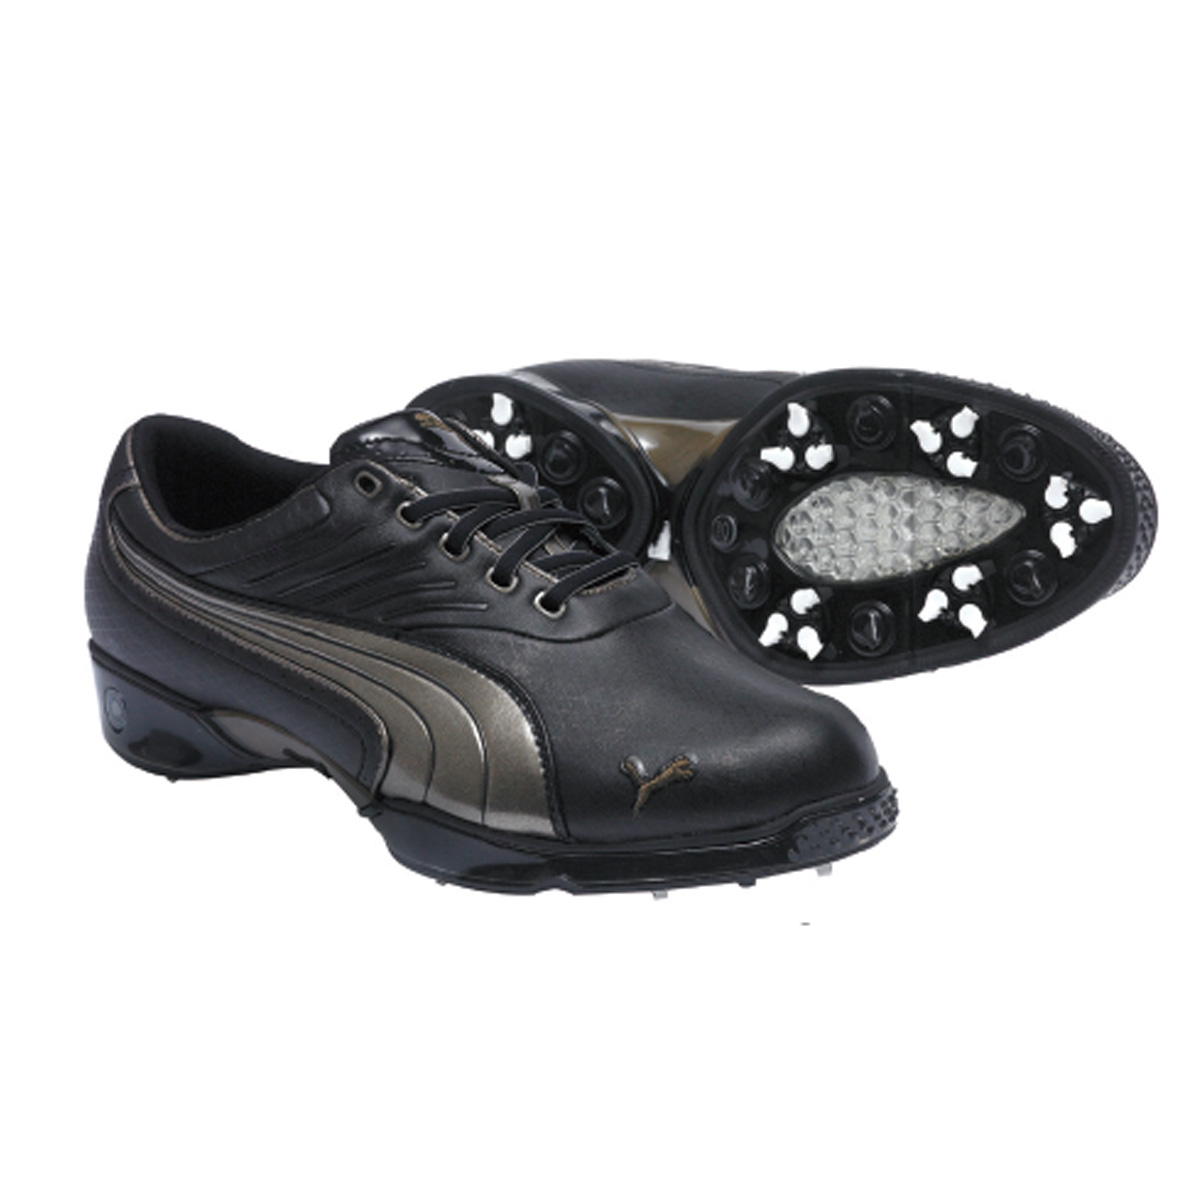 Puma-Mens-Cell-Fusion-Argyle-Golf-Shoes-Black-Bronze